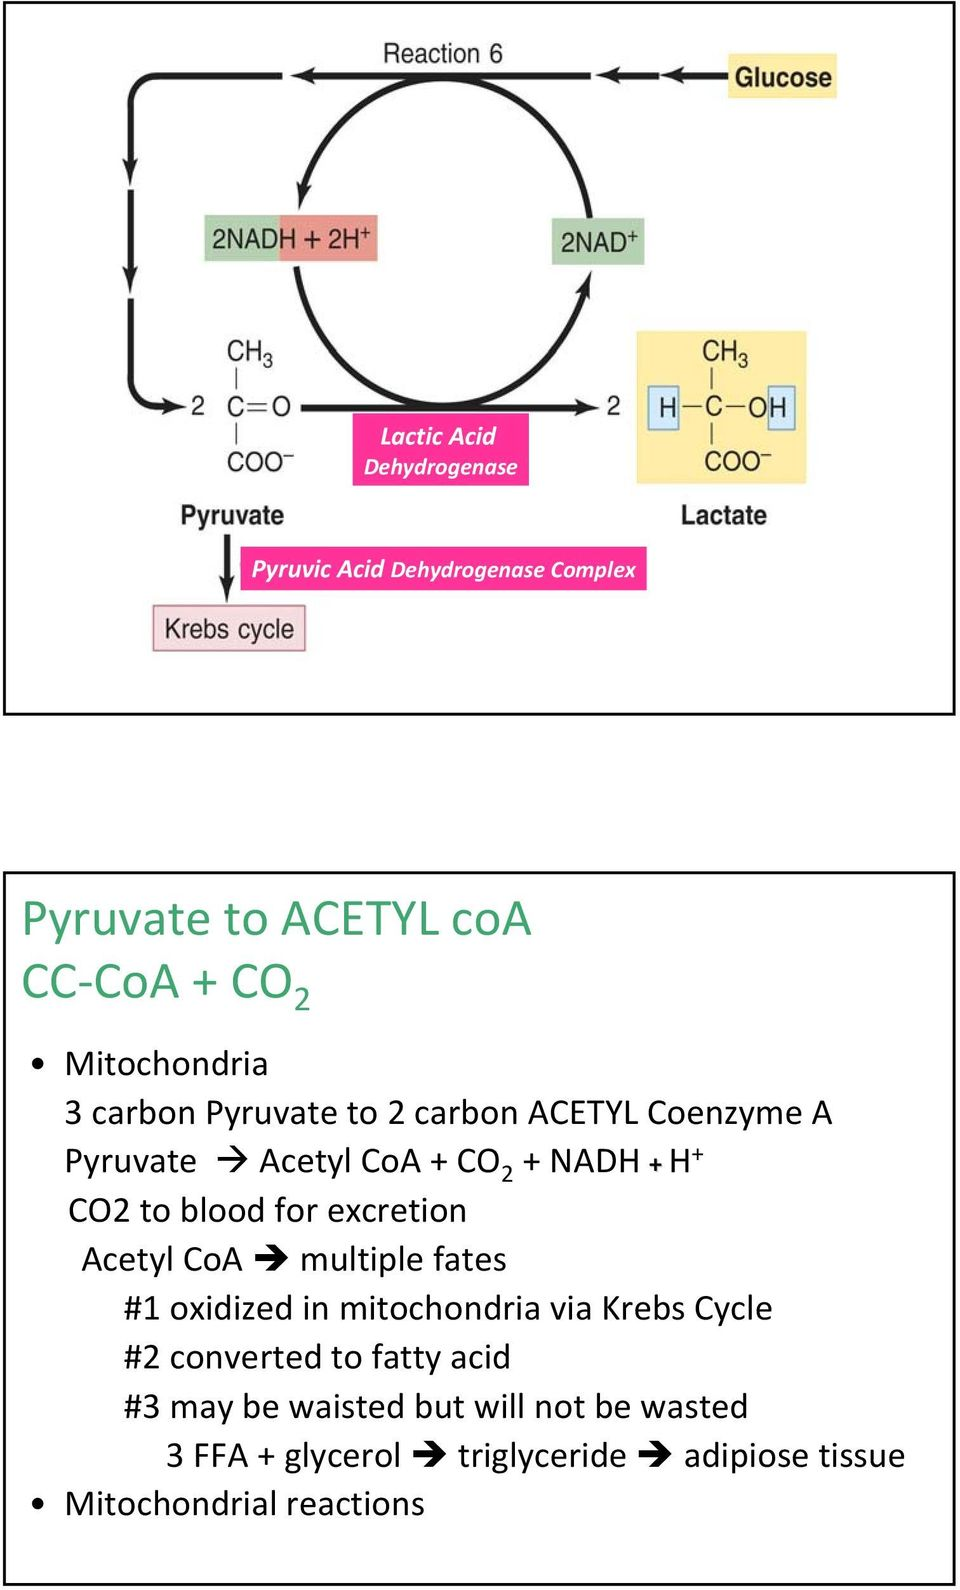 blood for excretion Acetyl CoA multiple fates #1 oxidized in mitochondria via Krebs Cycle #2 converted to